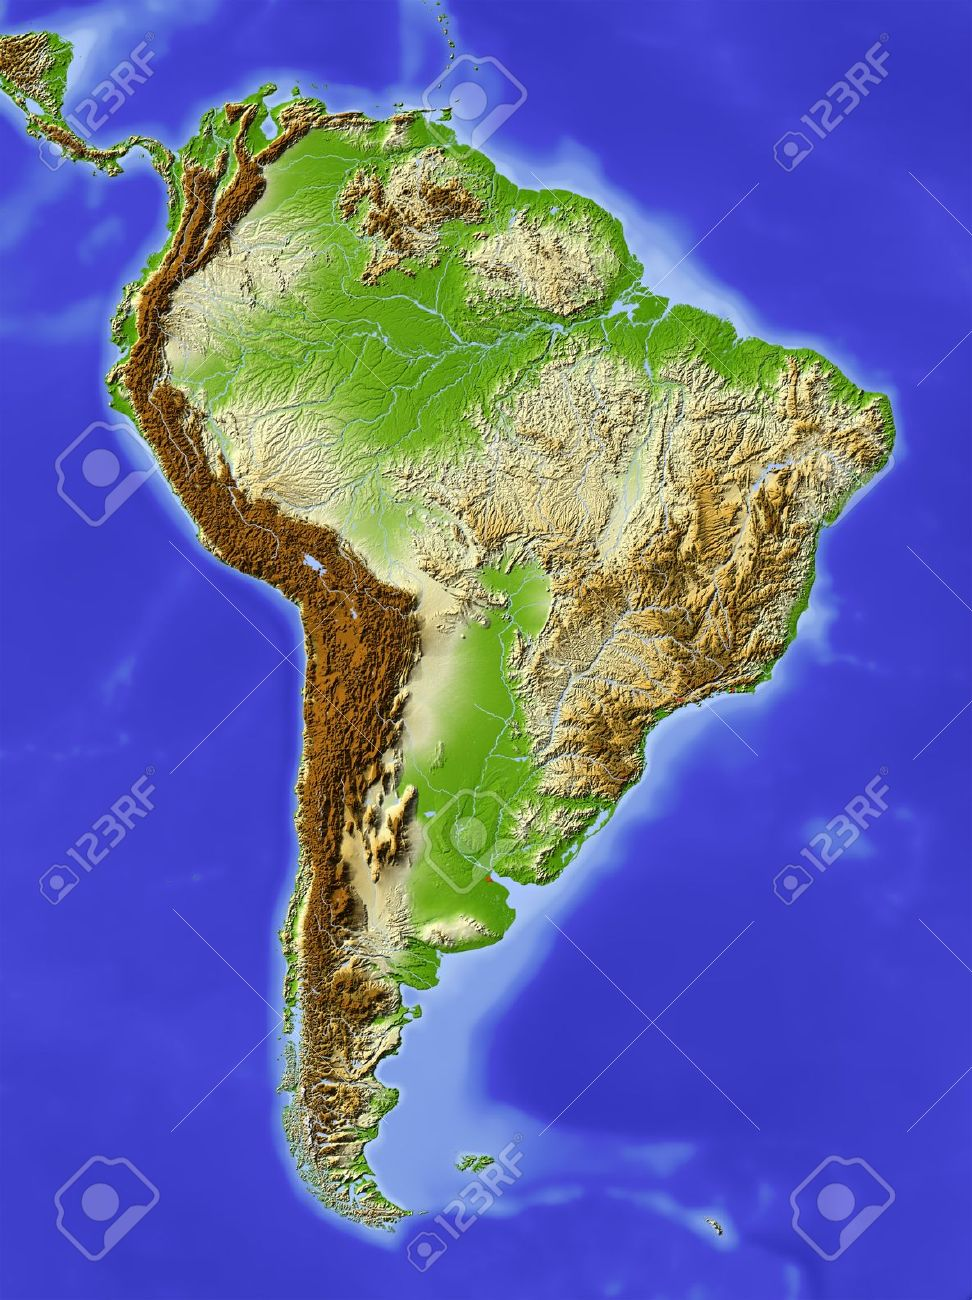 South America Shaded Relief Map Colored According To Elevation